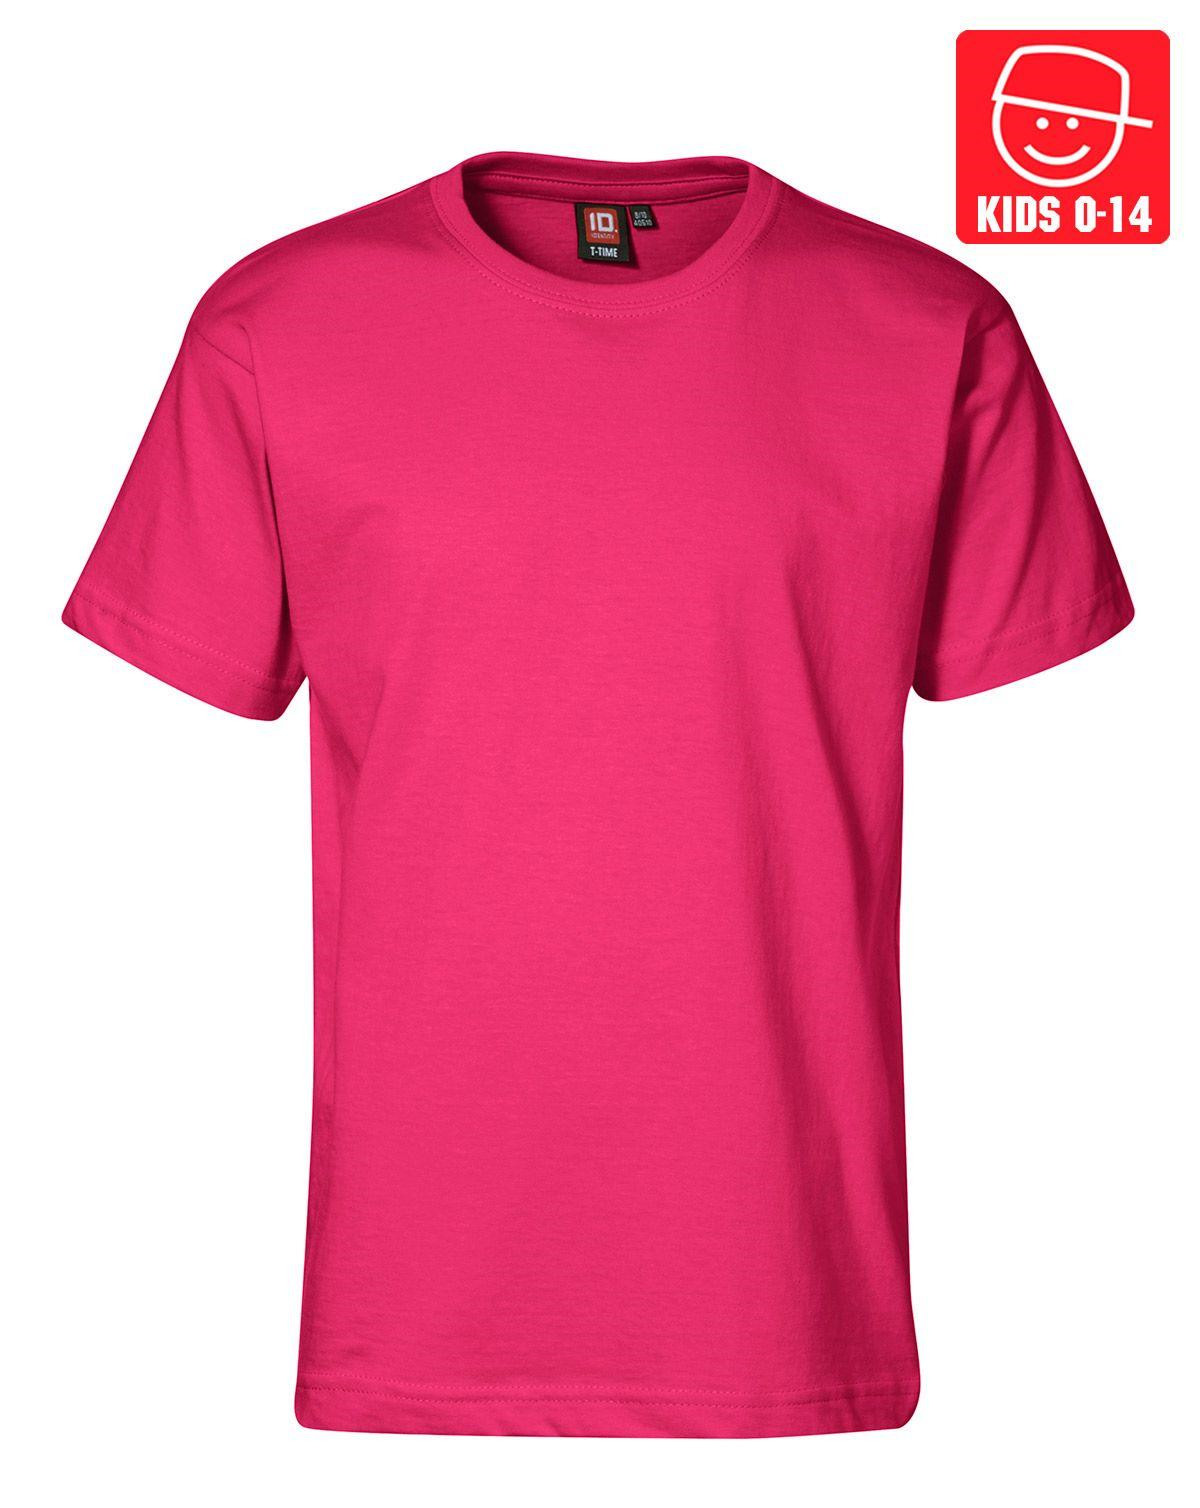 Image of   ID T-TIME T-shirt (Pink, K122)